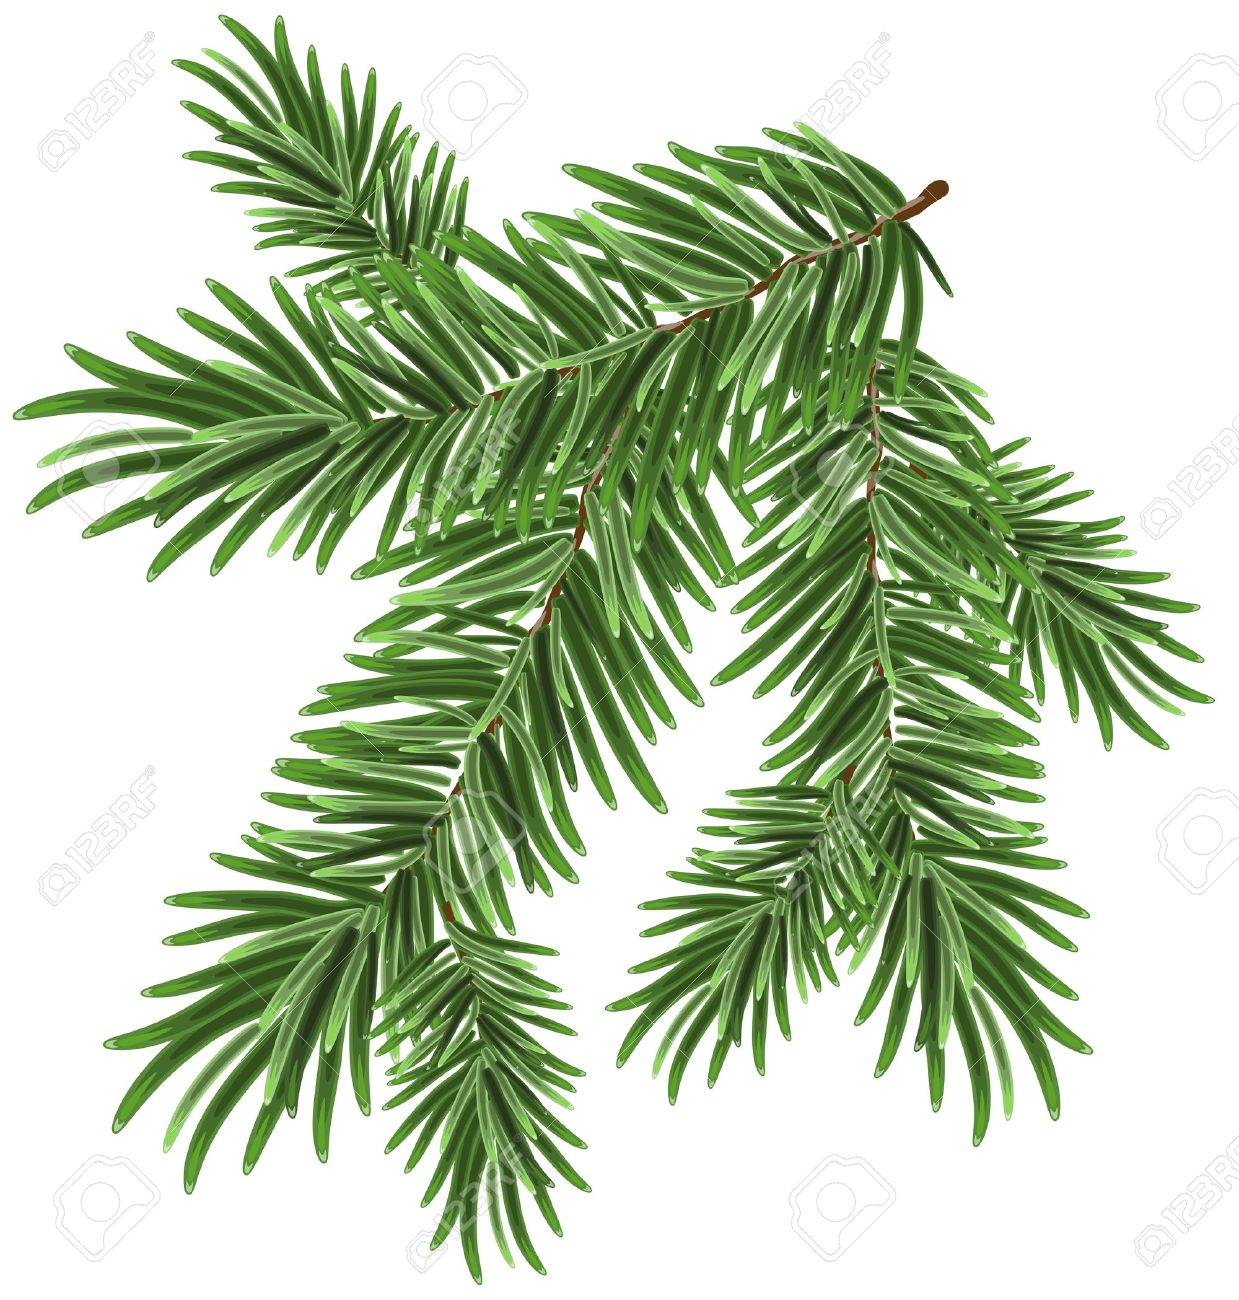 Green lush spruce branch. Fir branches. Isolated illustration in vector format - 44686906